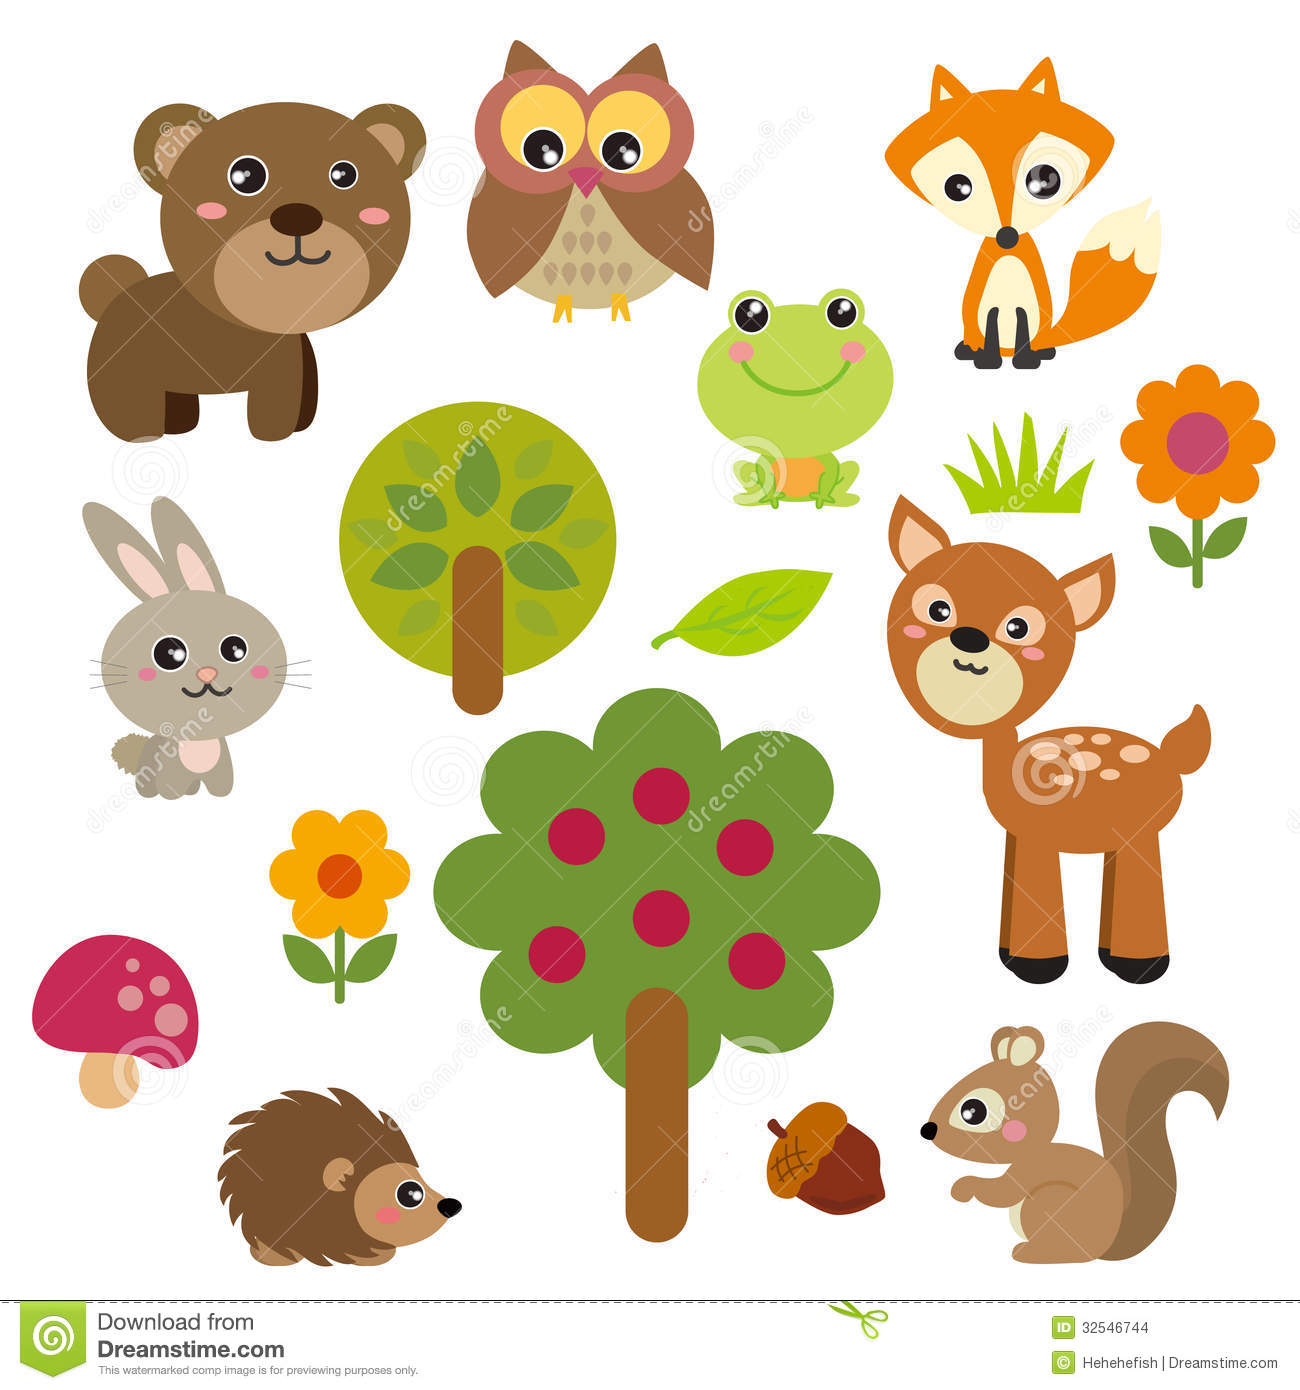 Animals clipart cute. Forest animal